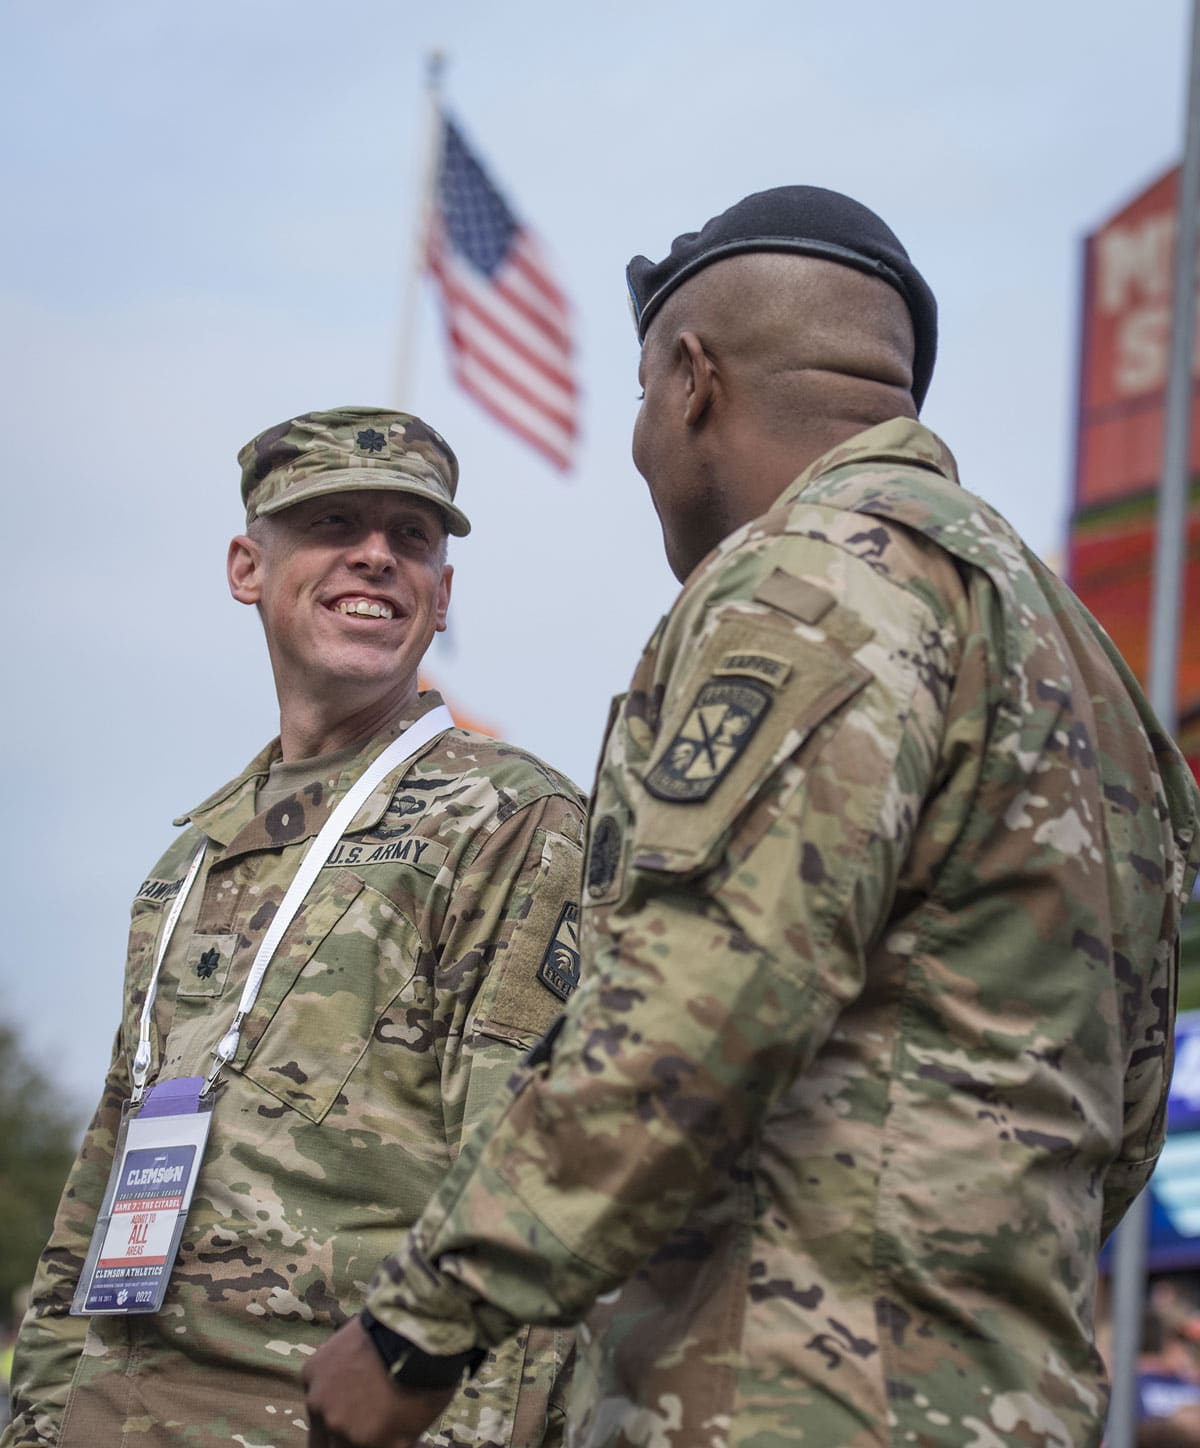 Clemson University professor of military leadership, U.S. Army Lt. Col. Kenneth Crawford, shares a laugh with military science instructor Sgt. 1st Class Lekendrick Stallworth during the 2017 Military Appreciation Game in Memorial Stadium.